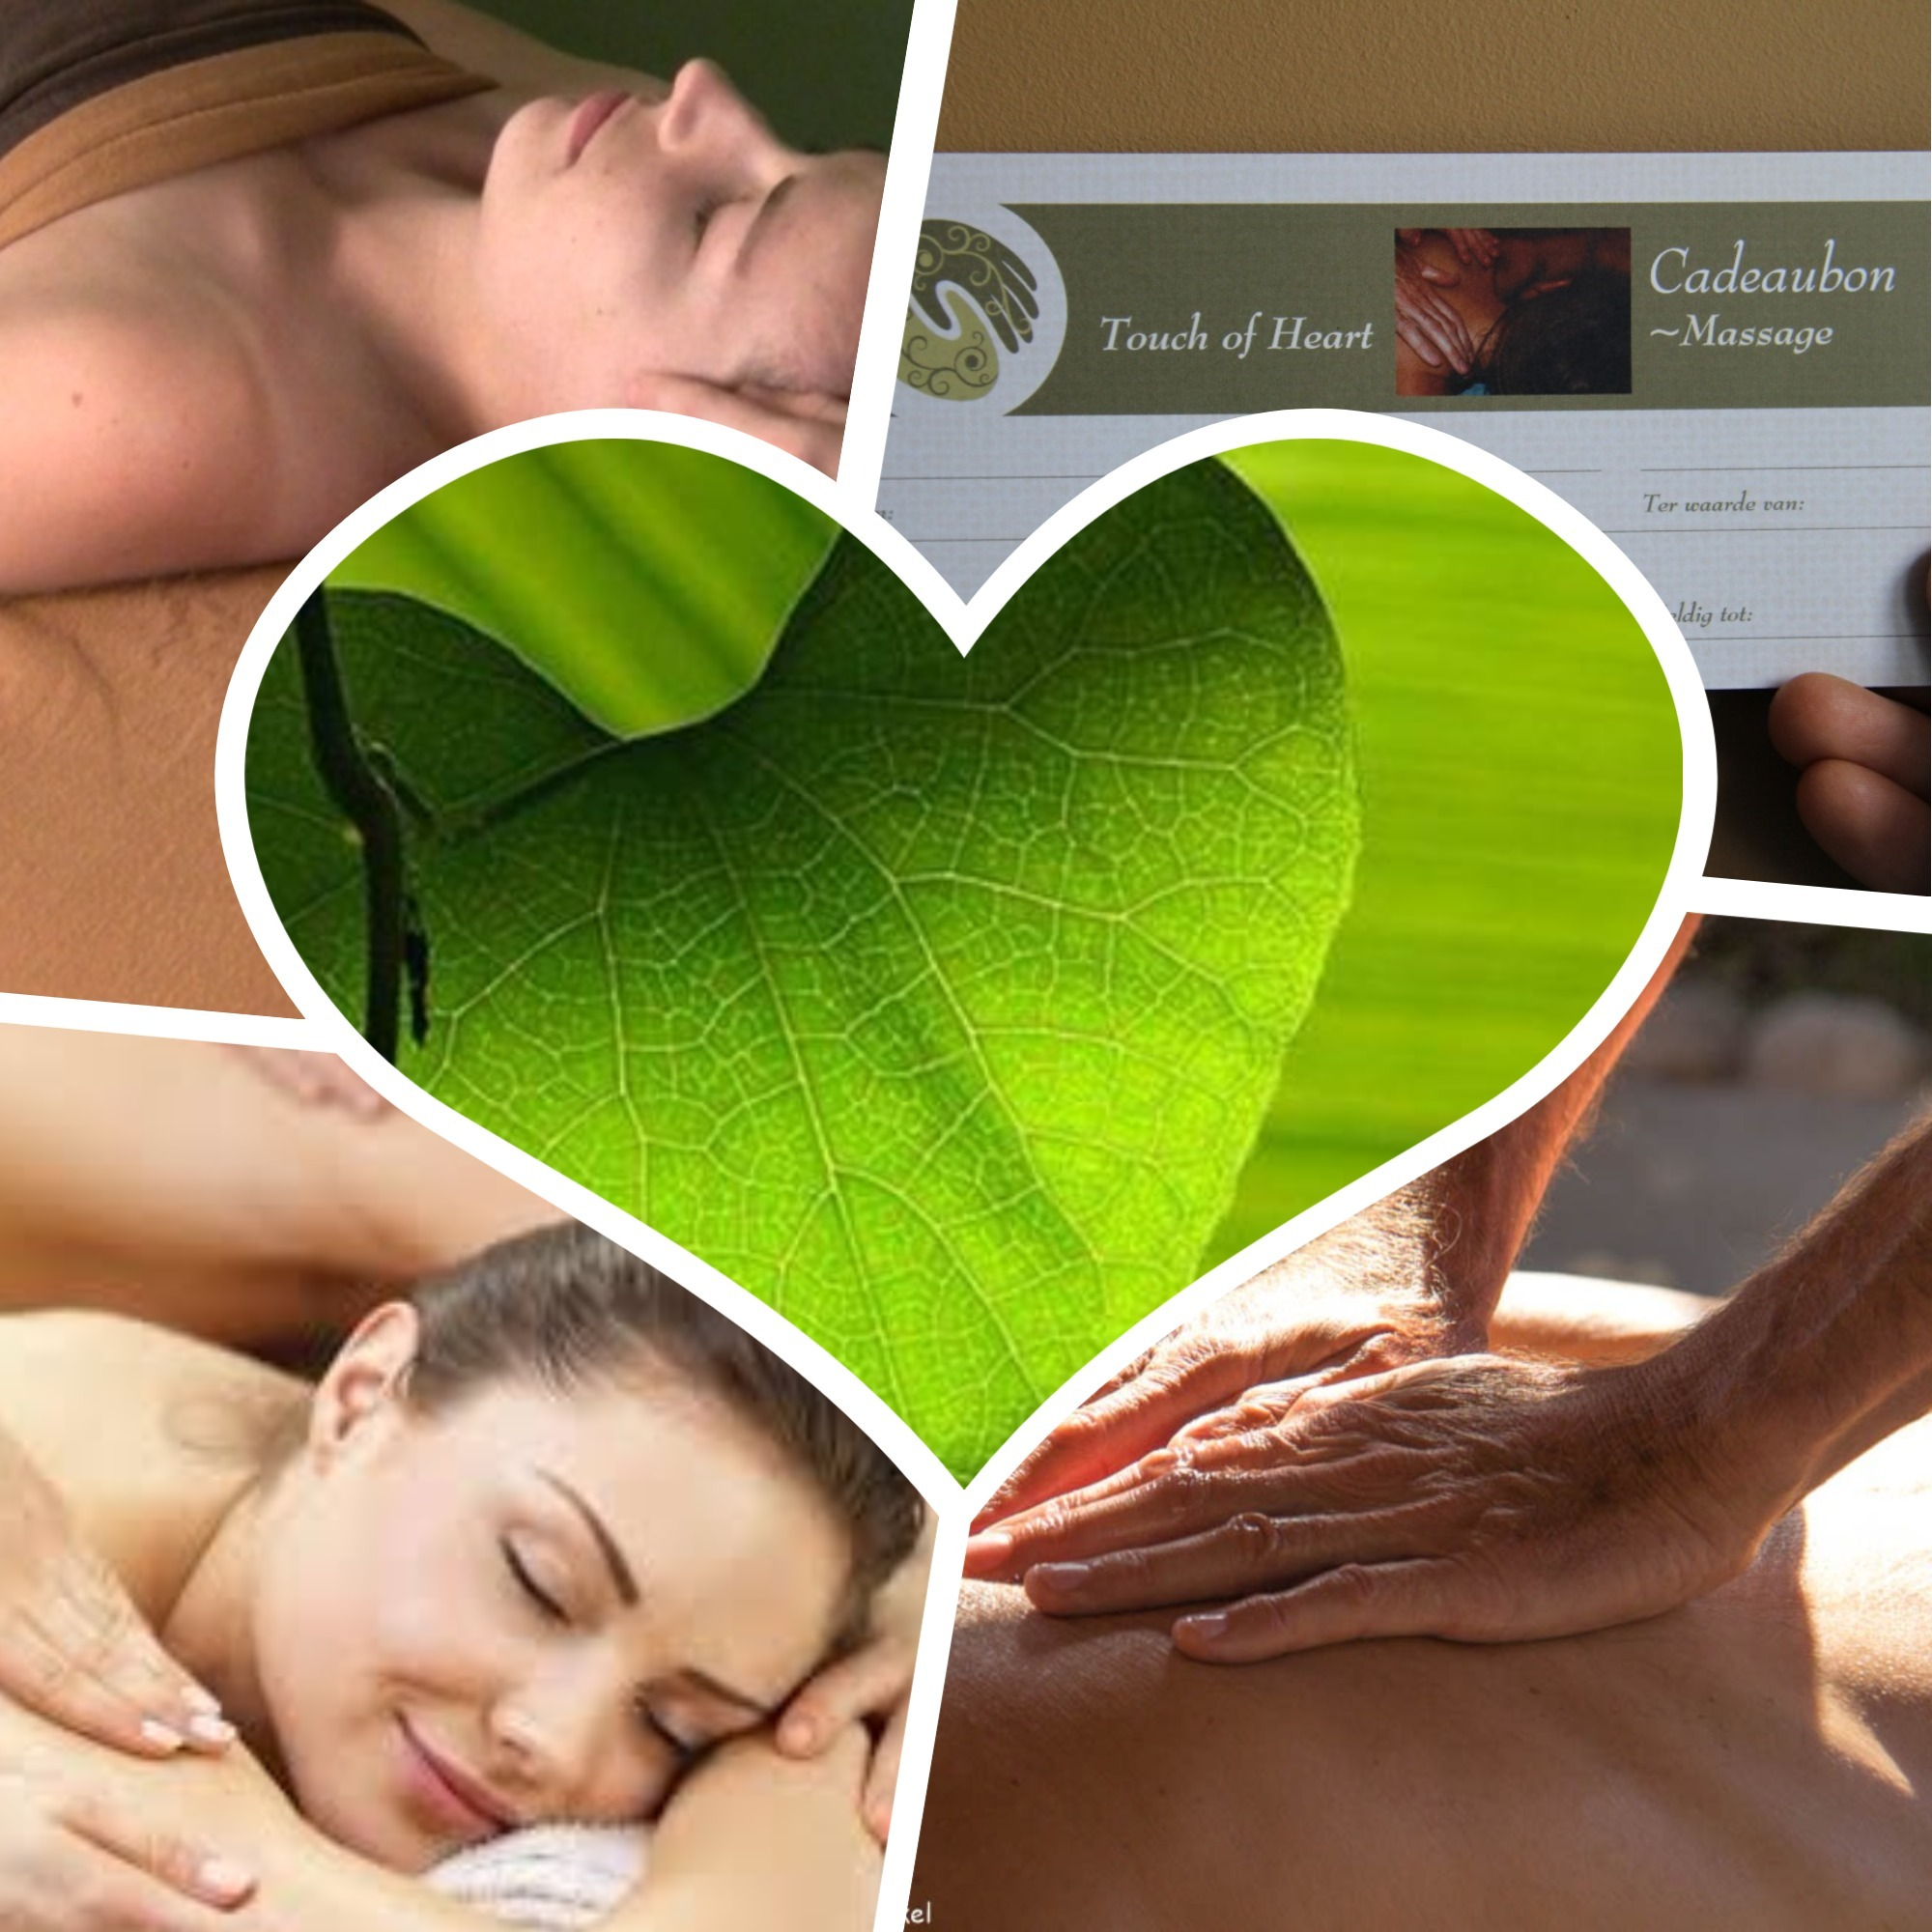 Touch of Heart massage